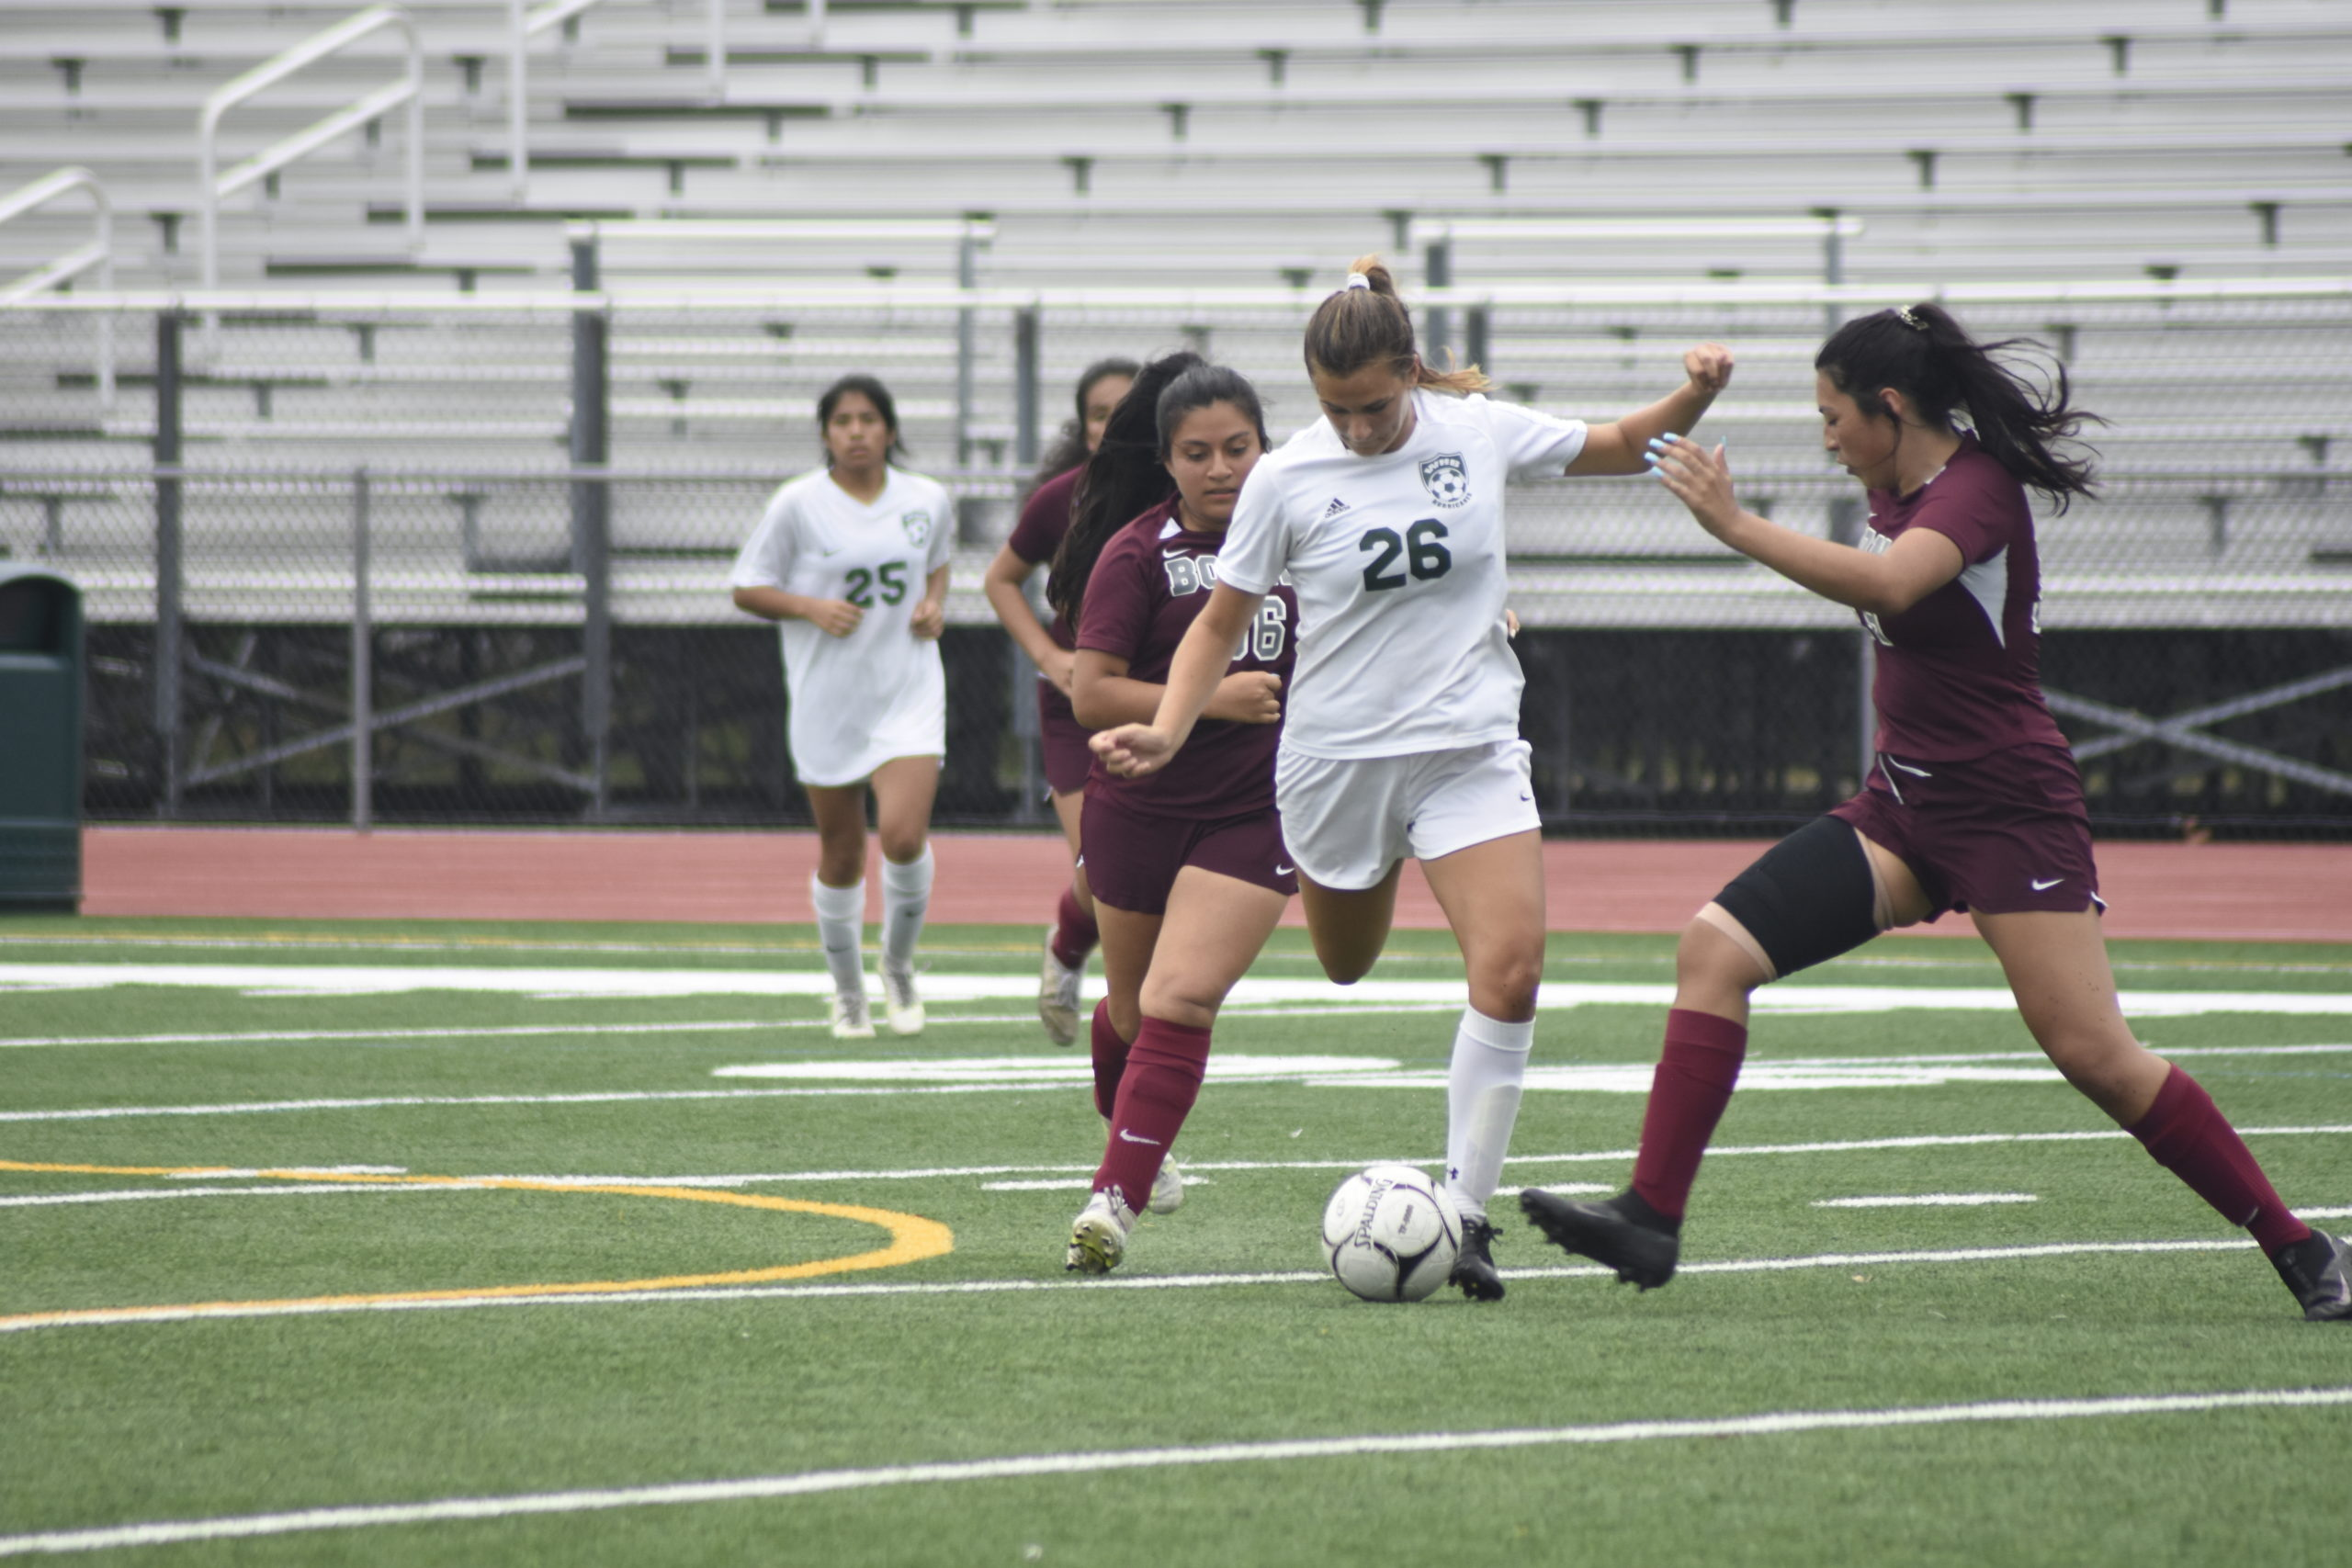 Sensing pressure from a pair of East Hampton players, Westhampton Beach junior Isabella Blanco clears the ball.